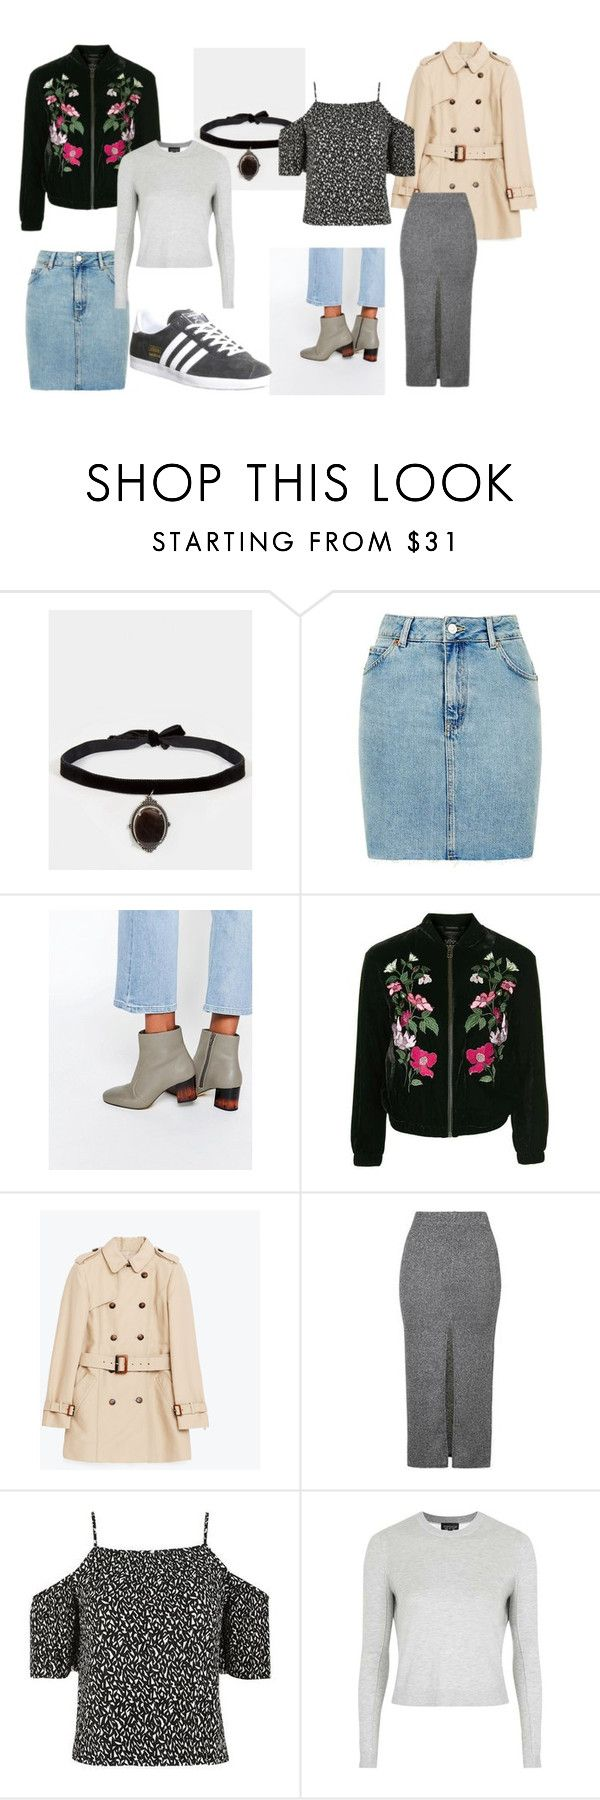 """Summer to Autumn Lust List"" by ashleighmc12 on Polyvore featuring REGALROSE, Topshop, ASOS and adidas"